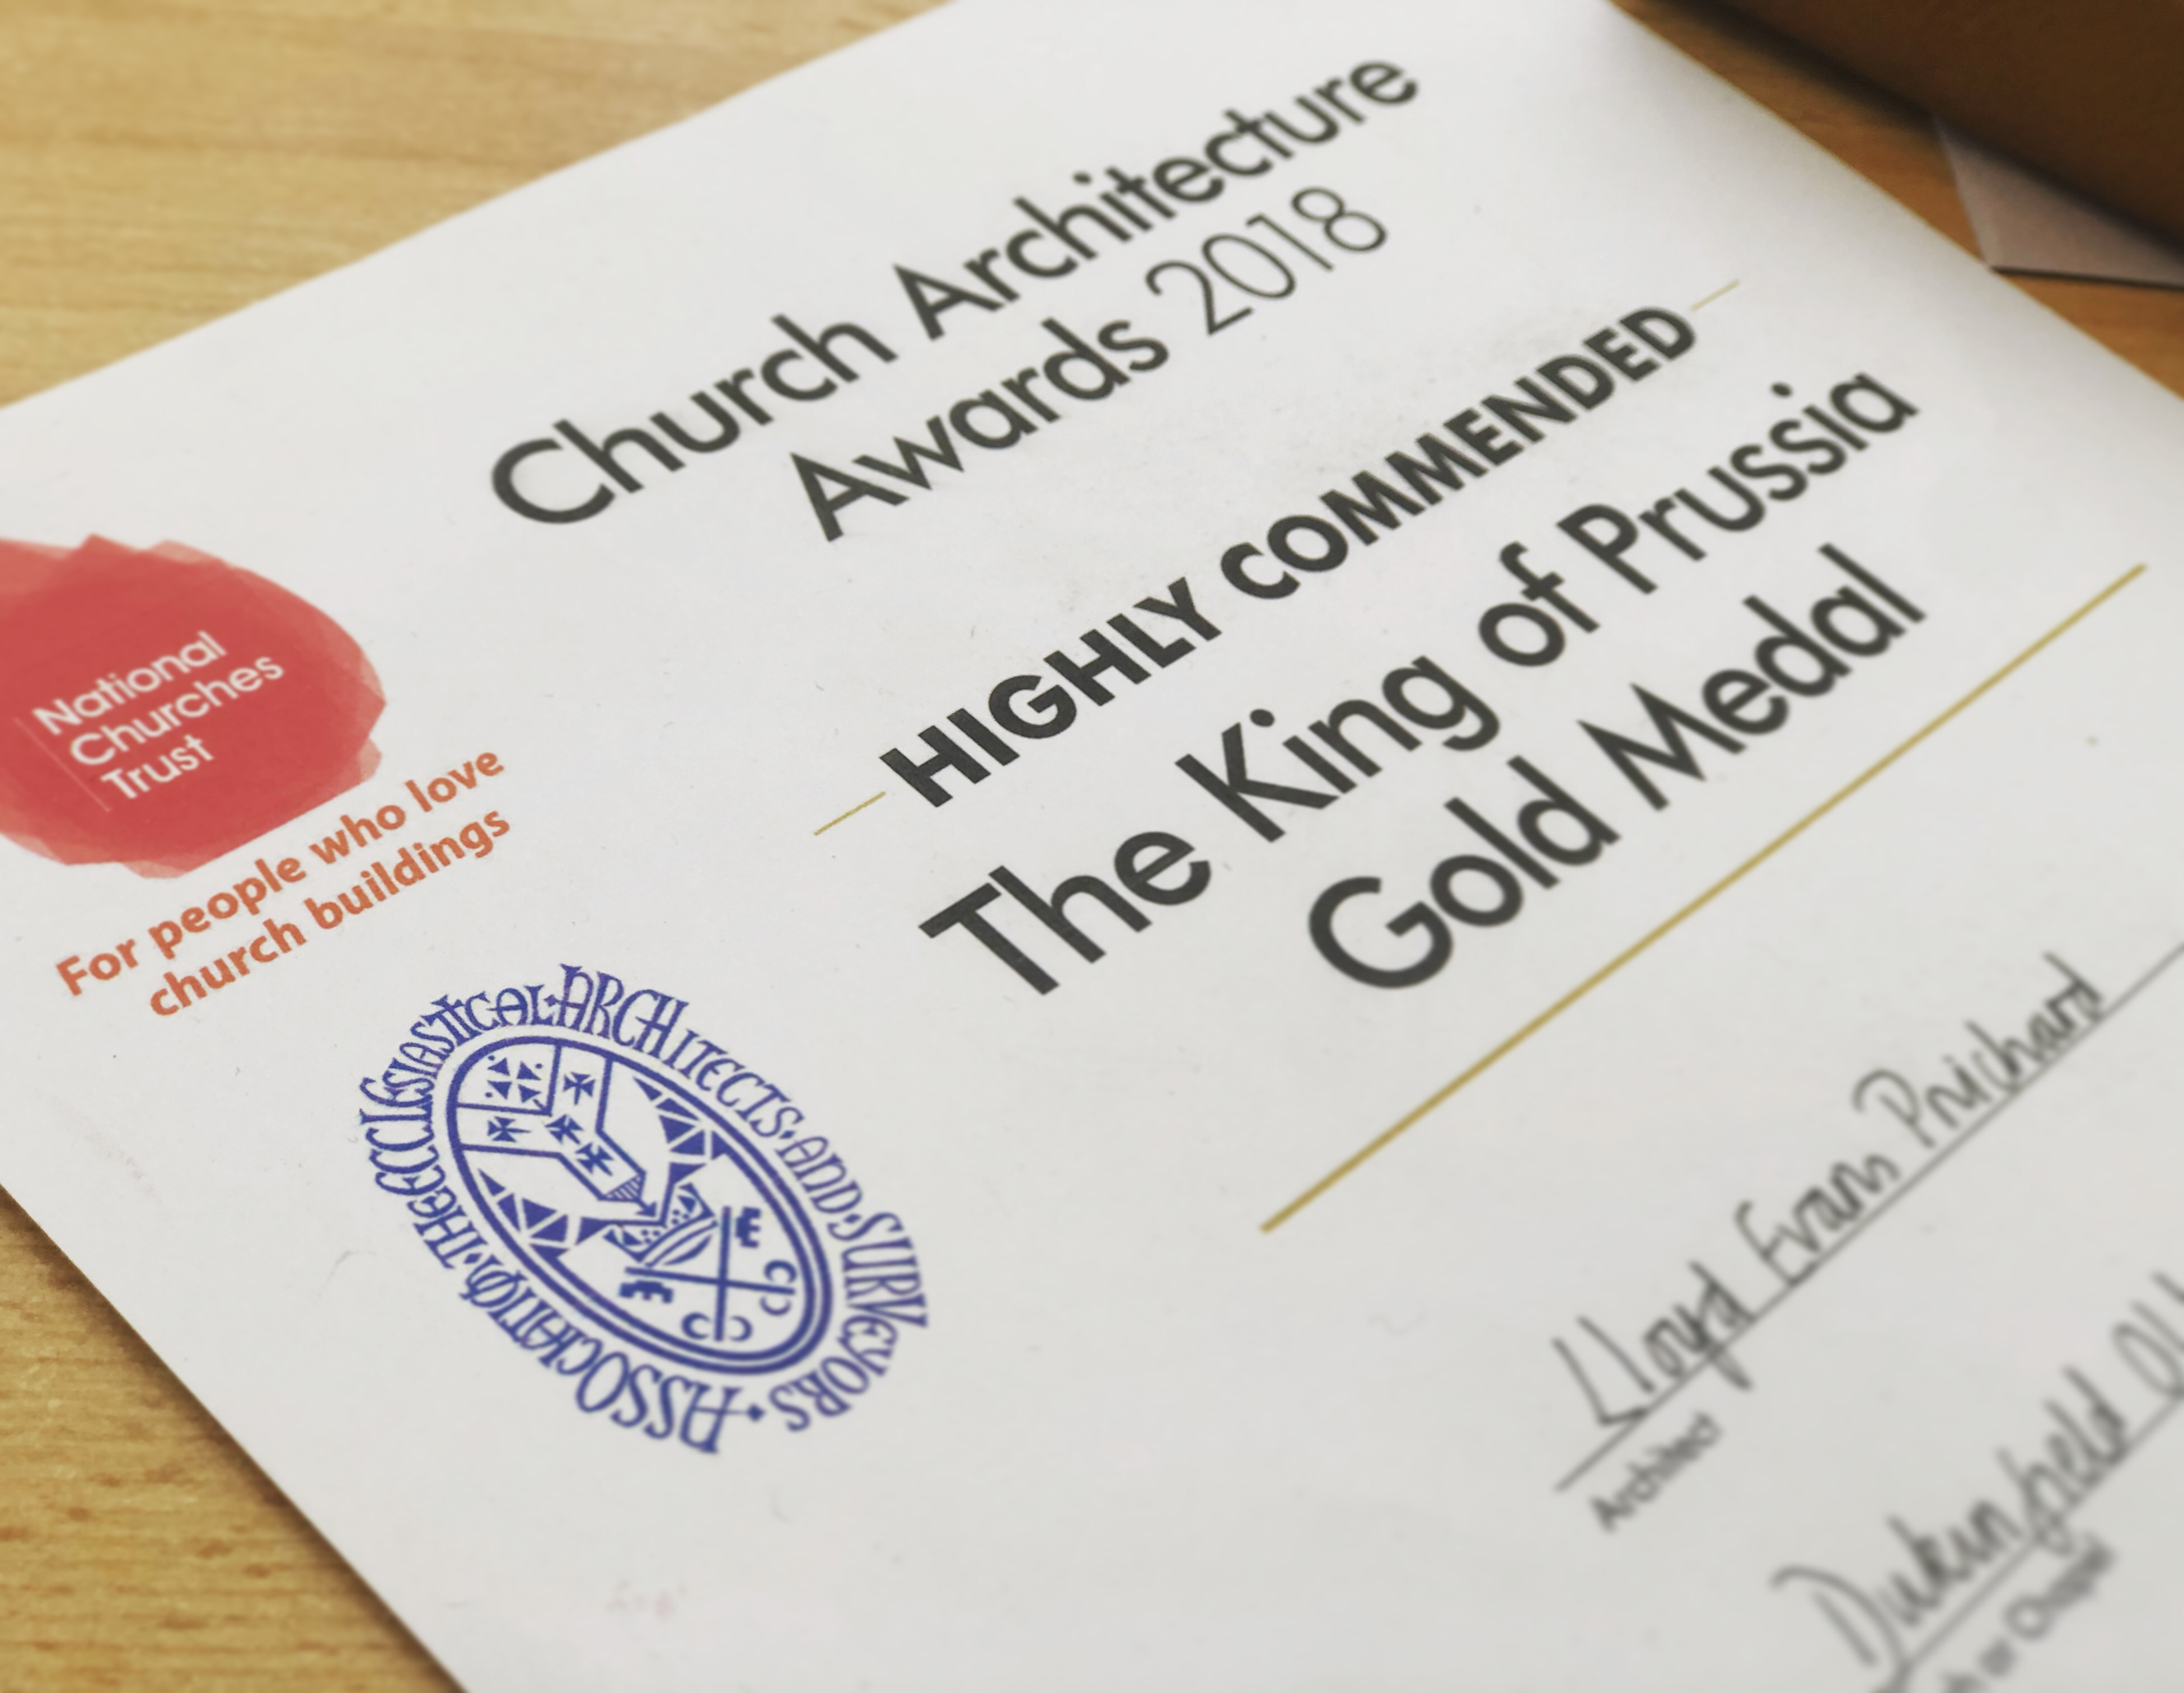 Image of the certificate awarded for Highly Commended The King of Prussia Gold Medal